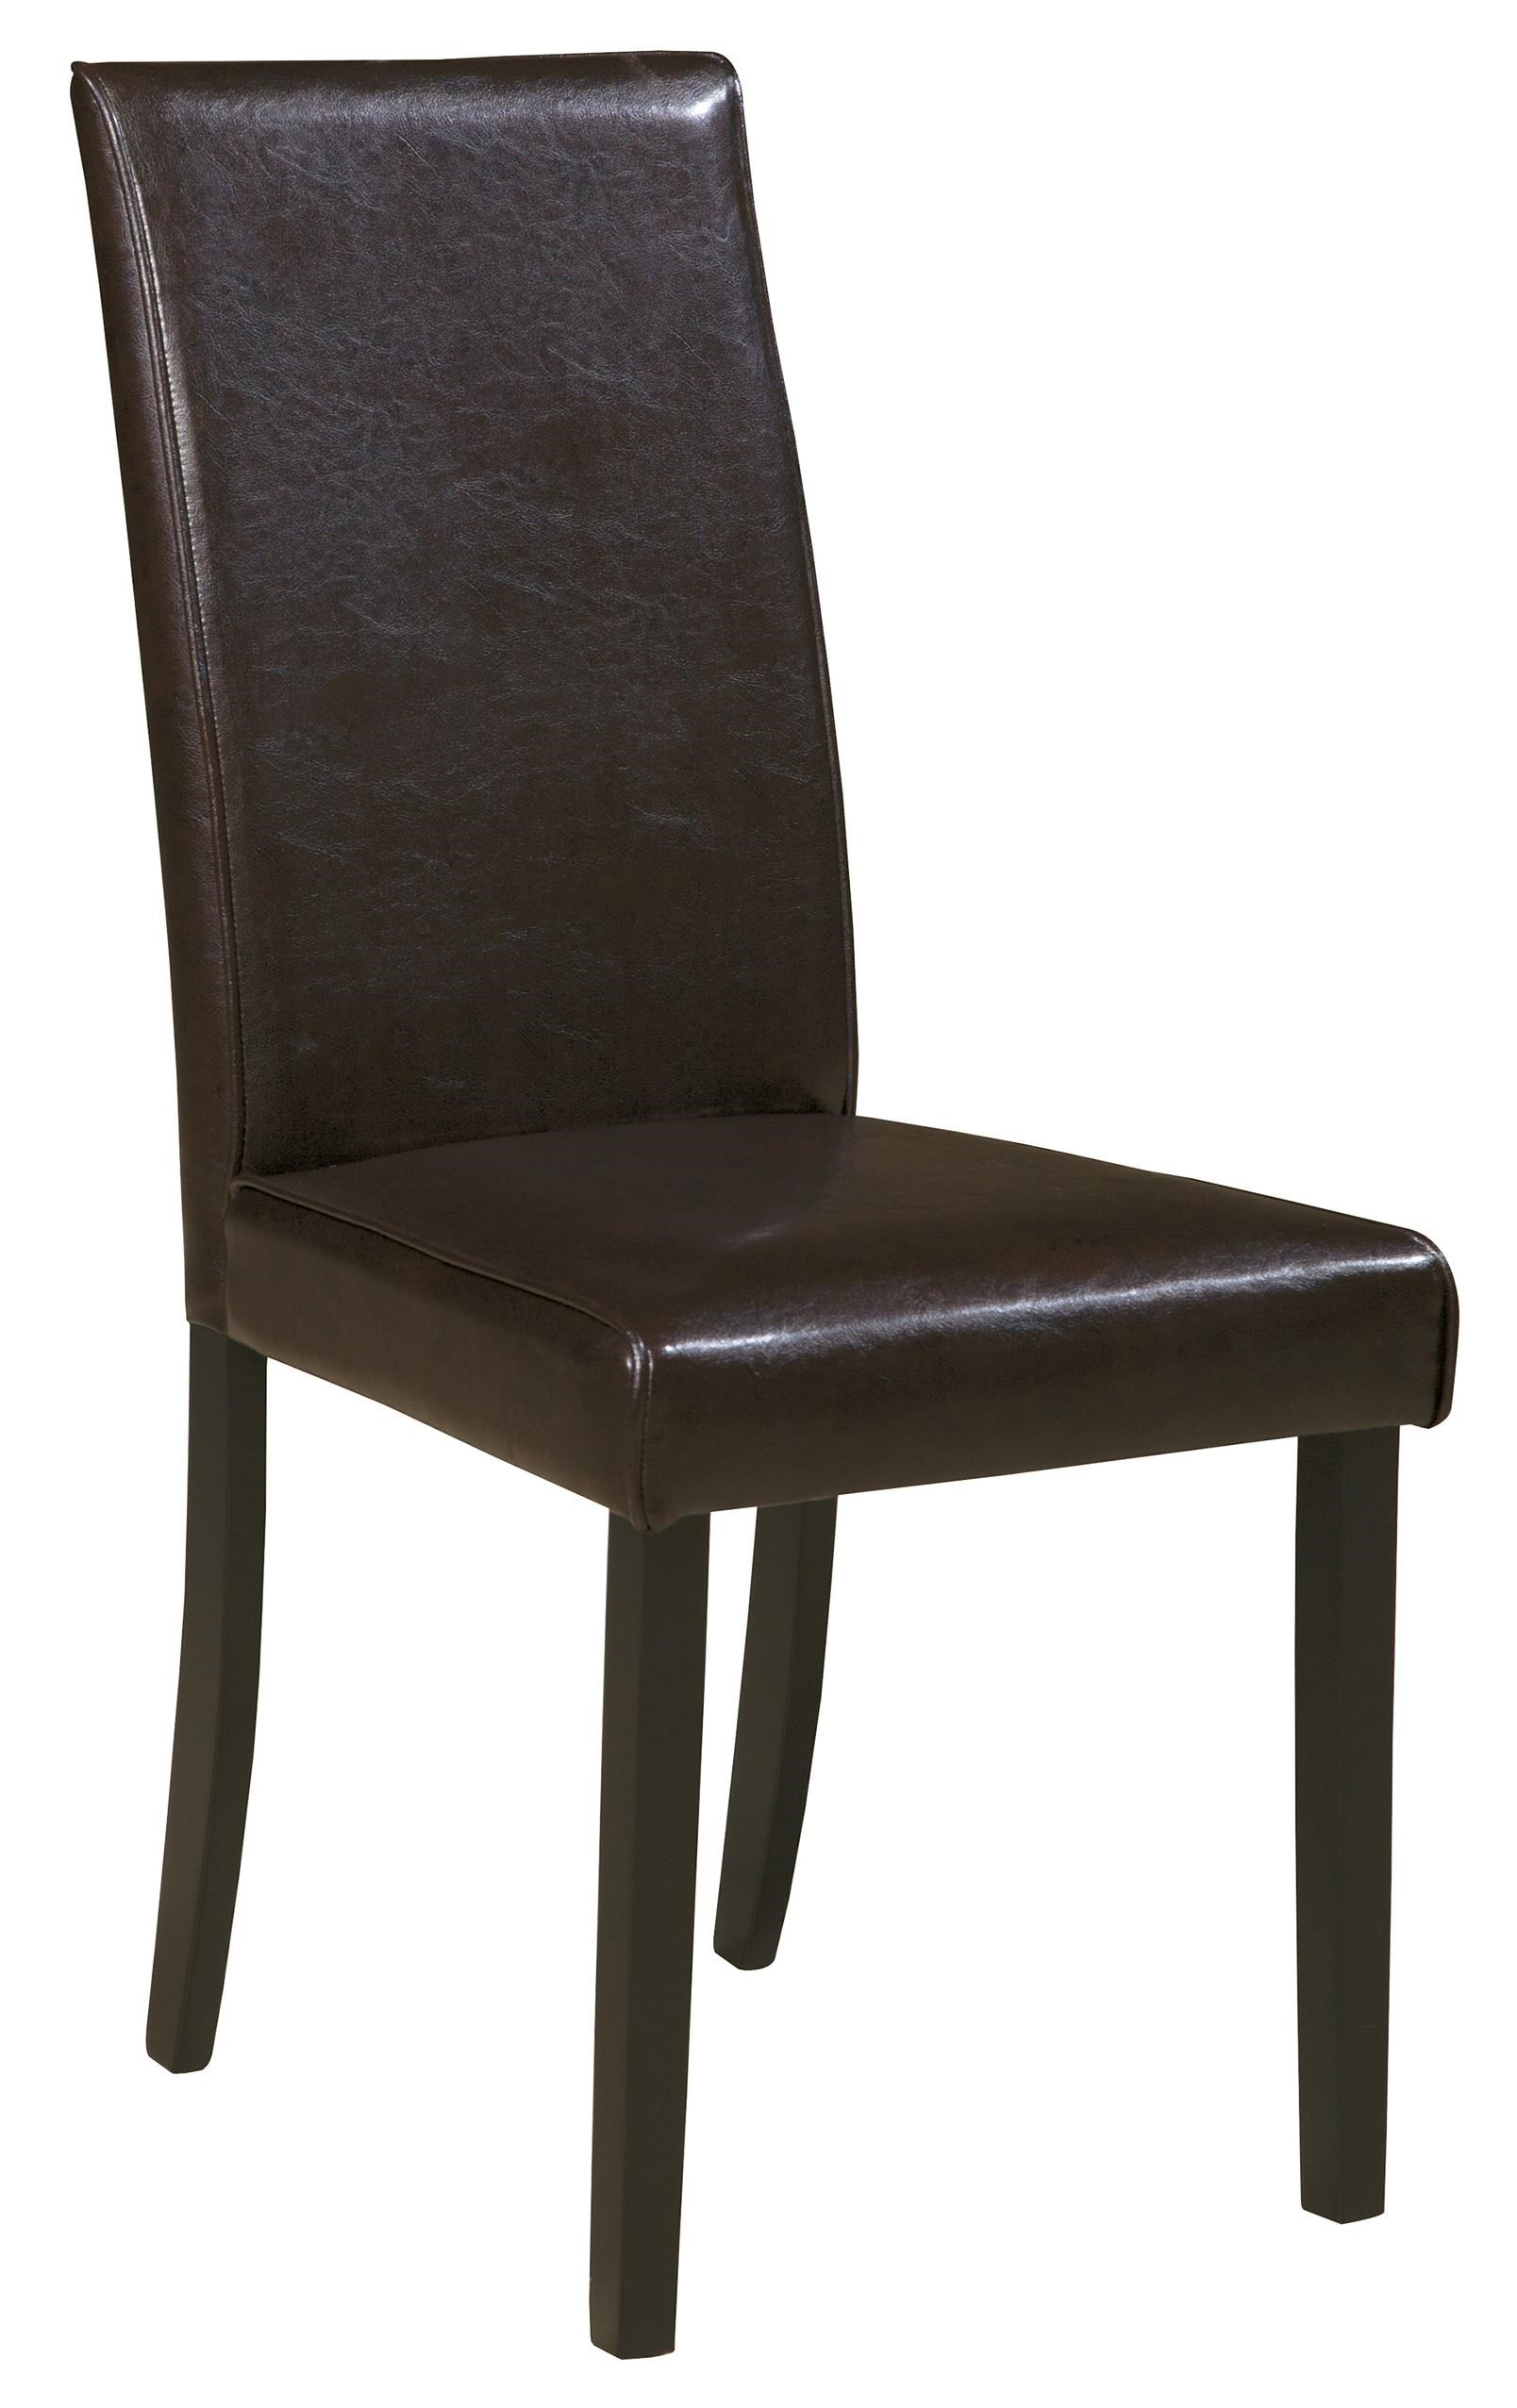 Signature Design by Ashley Kimonte Dining Upholstered Side  : products2Fsignaturedesignbyashley2Fcolor2Fkimonte20 201195589344d250 02 b0jpgscalebothampwidth500ampheight500ampfsharpen25ampdown from www.wayside-furniture.com size 500 x 500 jpeg 19kB